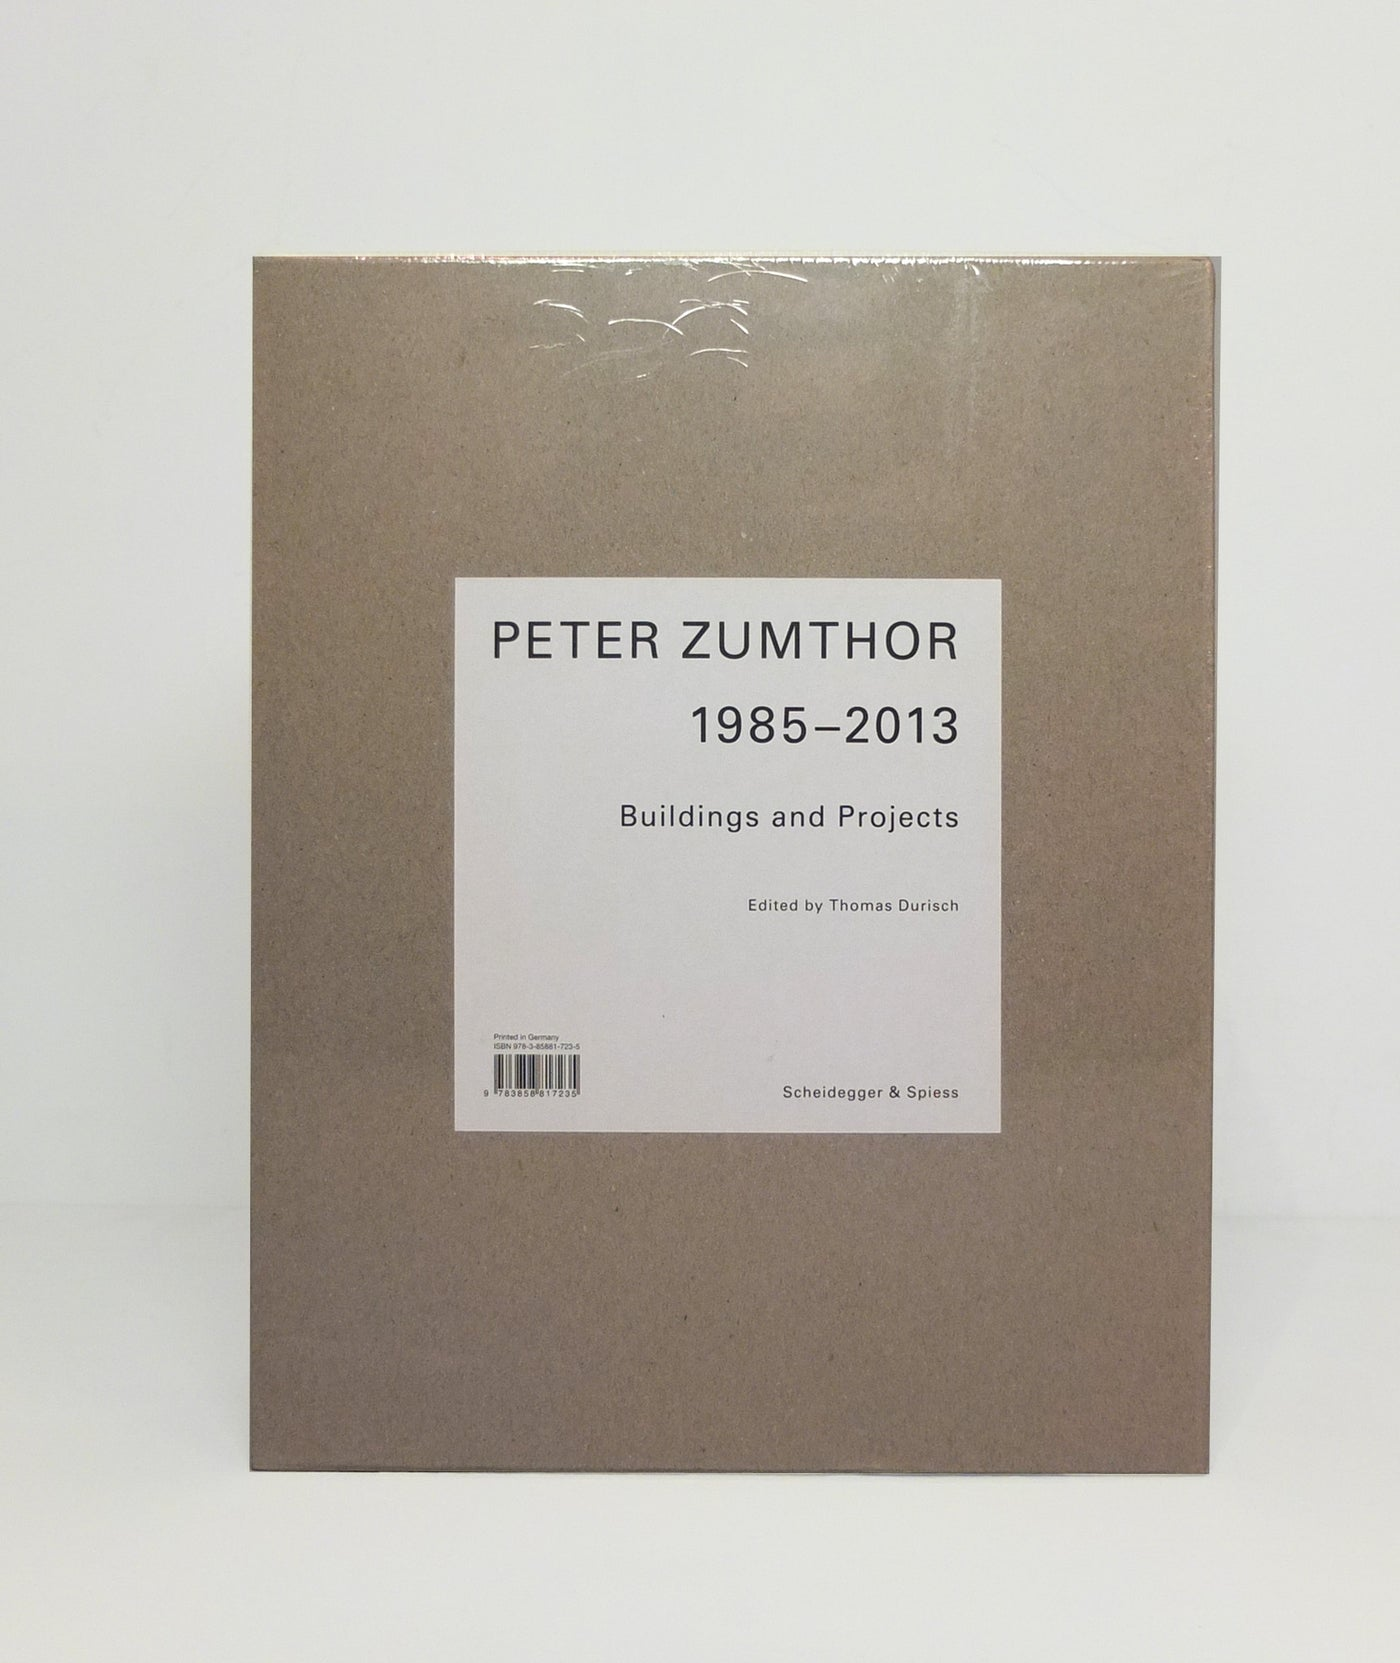 Peter Zumthor 1985-2013: Buildings and Projects}